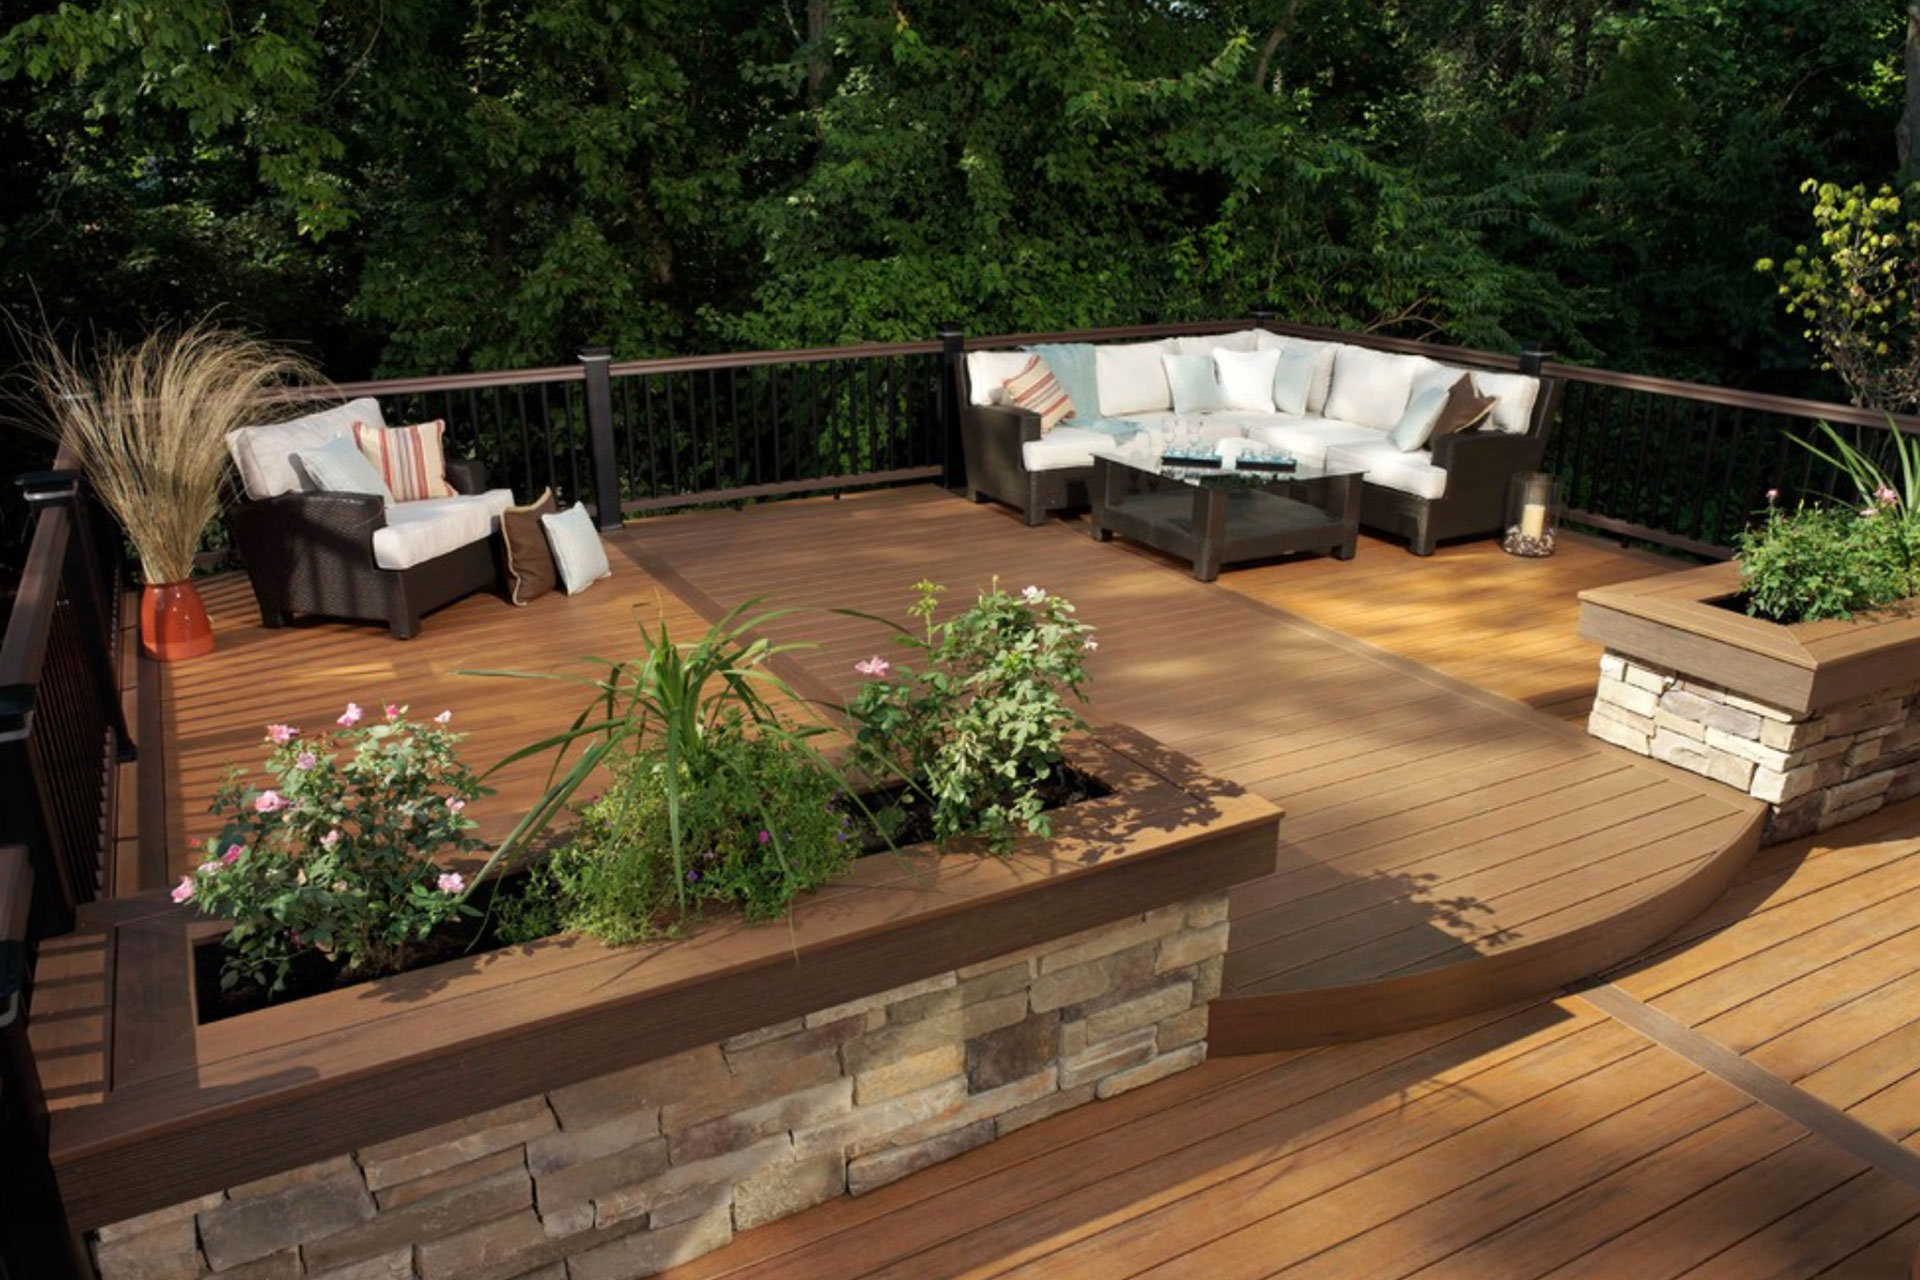 Wood composite or pvc a guide to choosing deck materials for Synthetic deck material